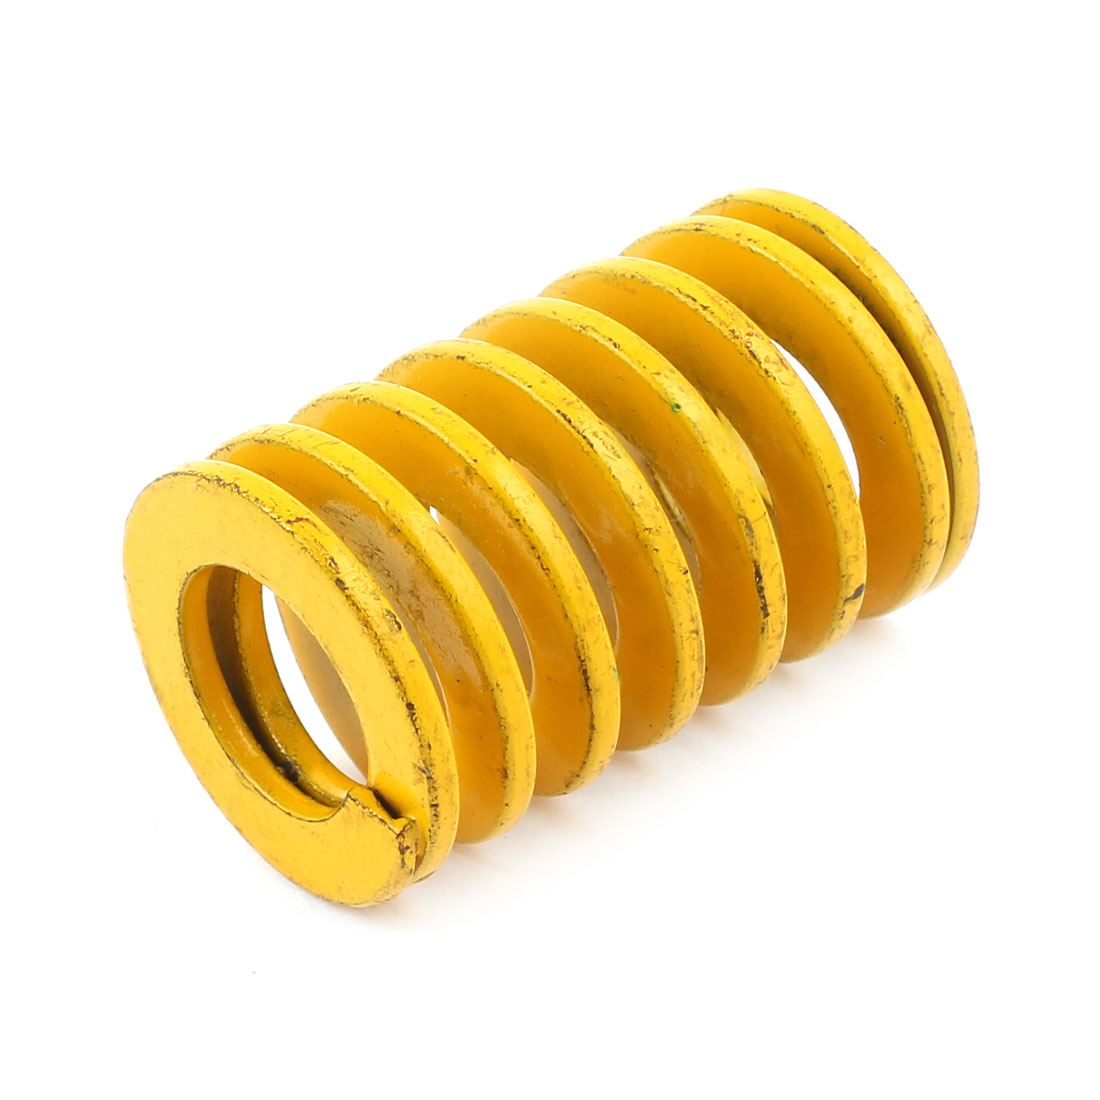 Yellow Alloy Steel Light Load Press Flat Coil Compression Die Spring 35mm x 17.5mm x 55mm